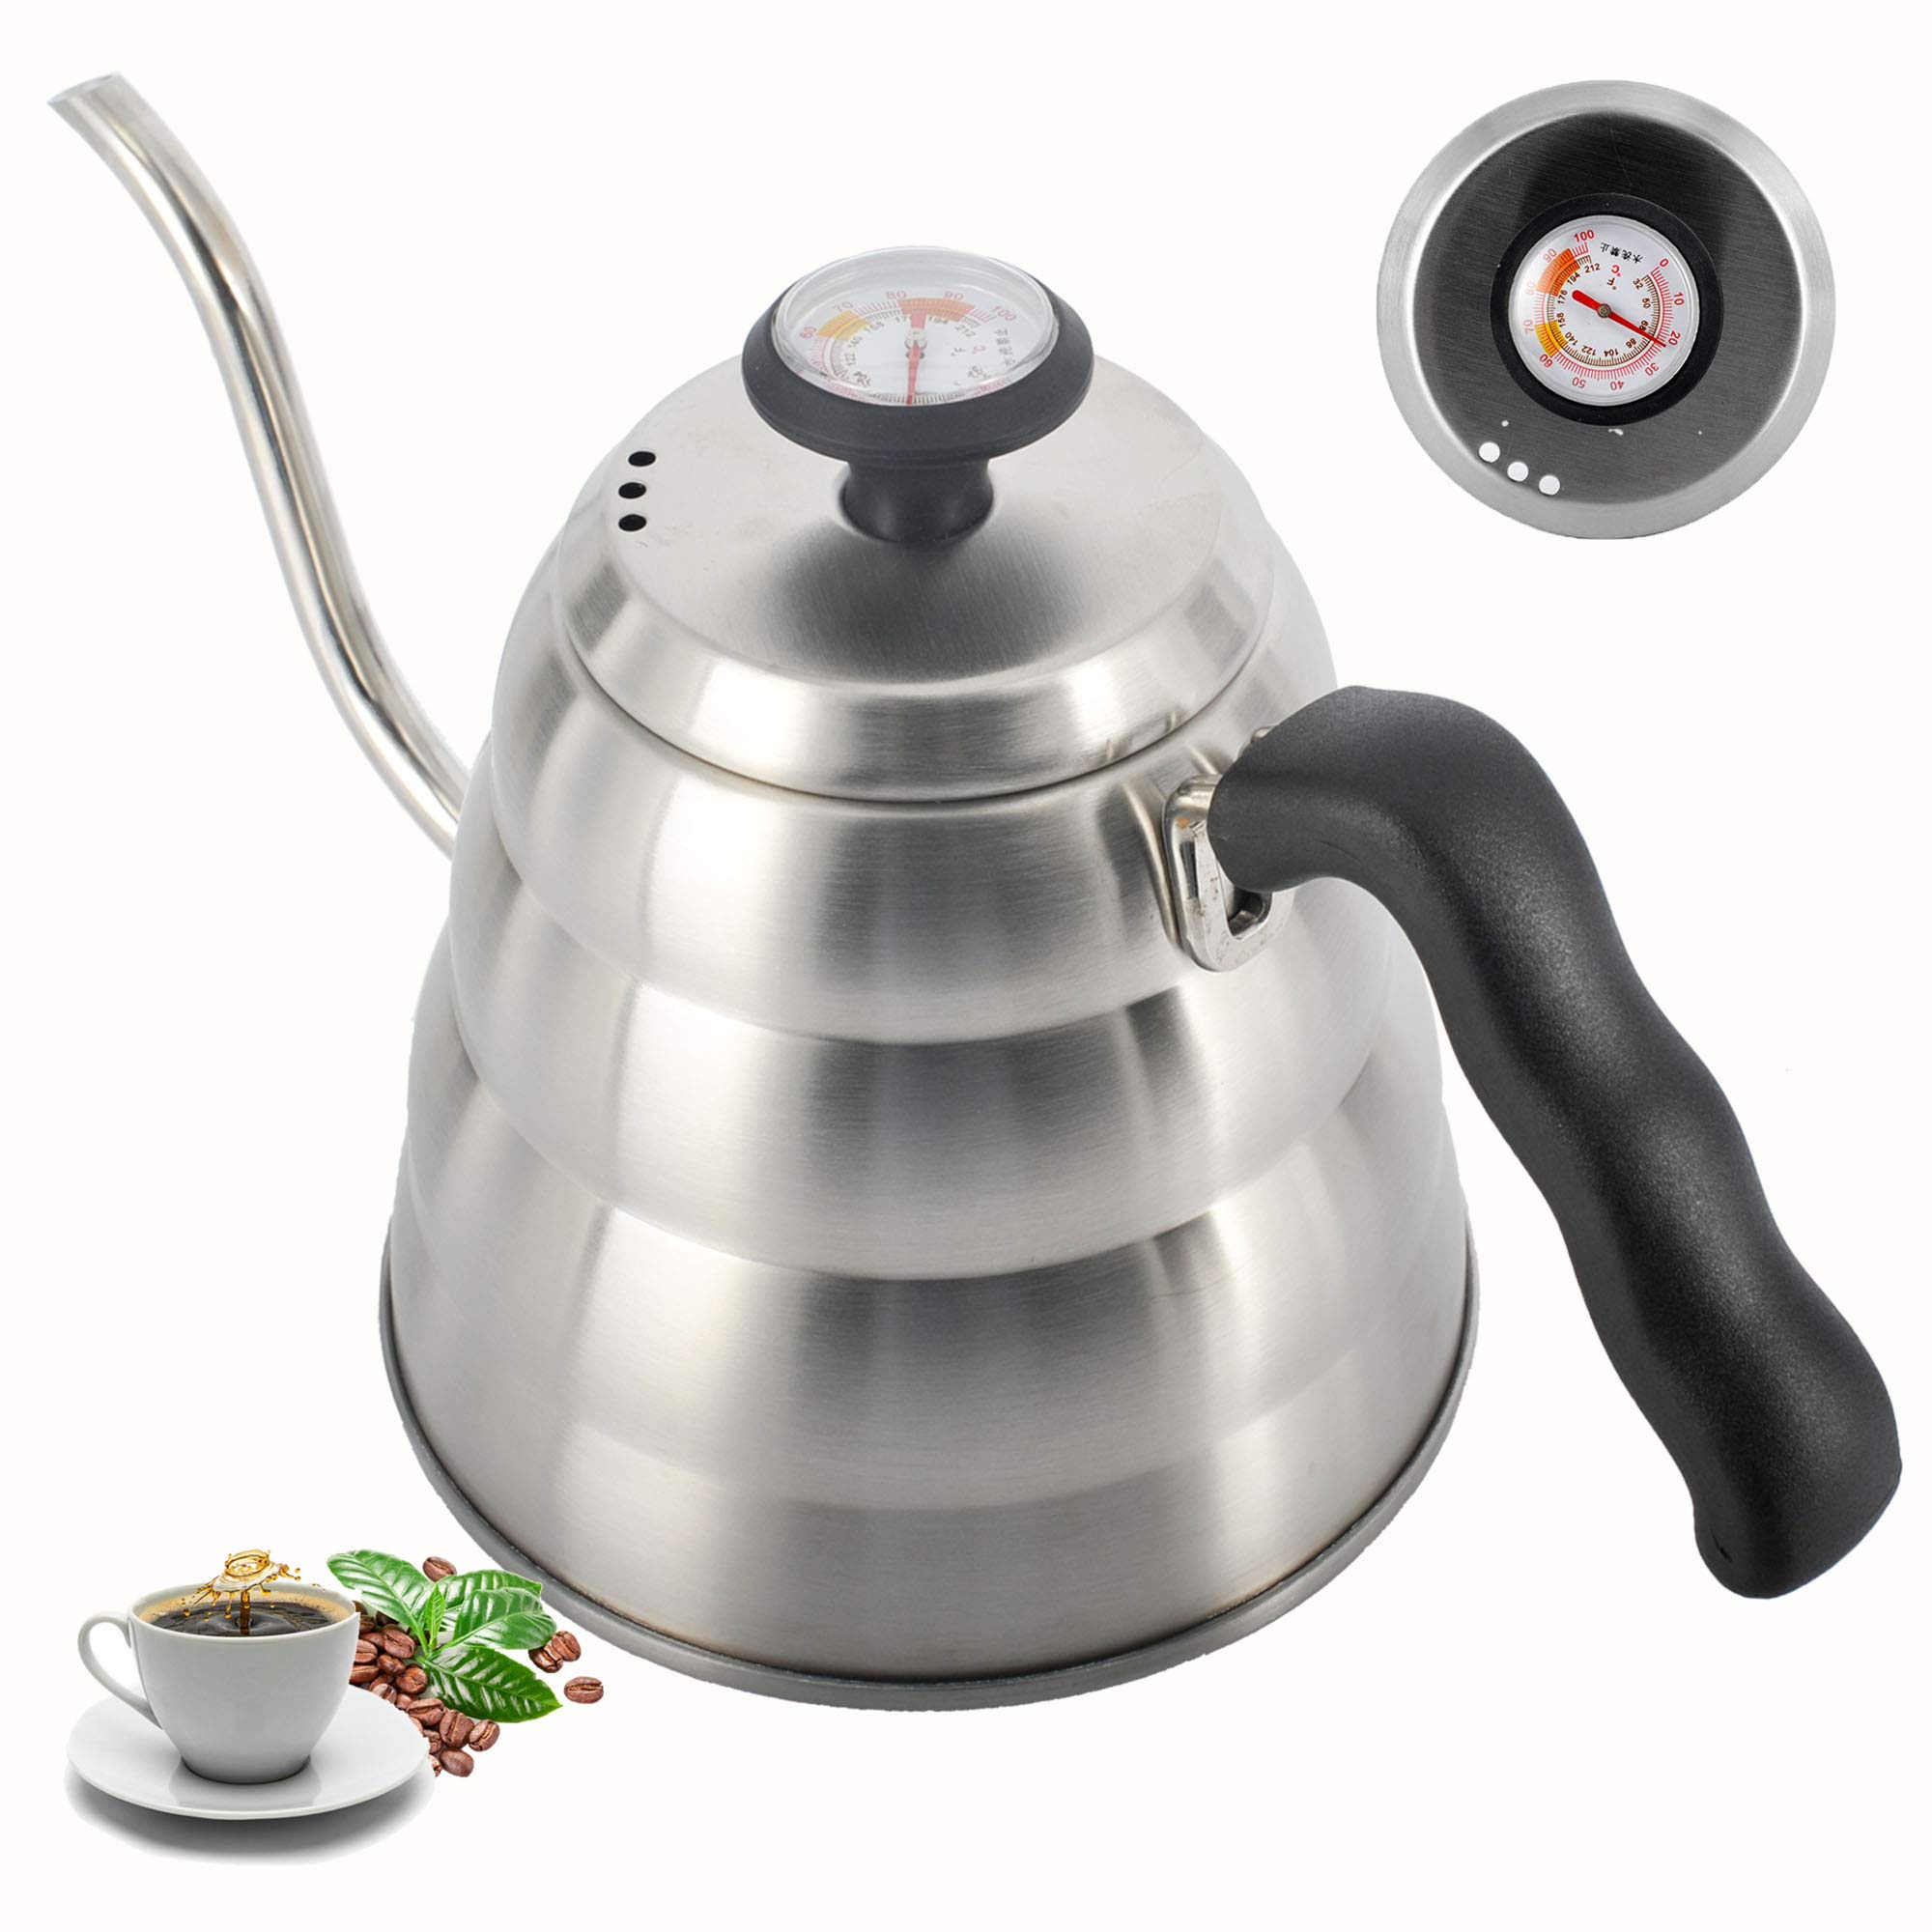 Pour Over Coffee Kettle with Exact Thermometer,Naturous Gooseneck Kettle Tea Kettle for Drip Coffee and Tea (1.2 Liter | 40 fl oz)